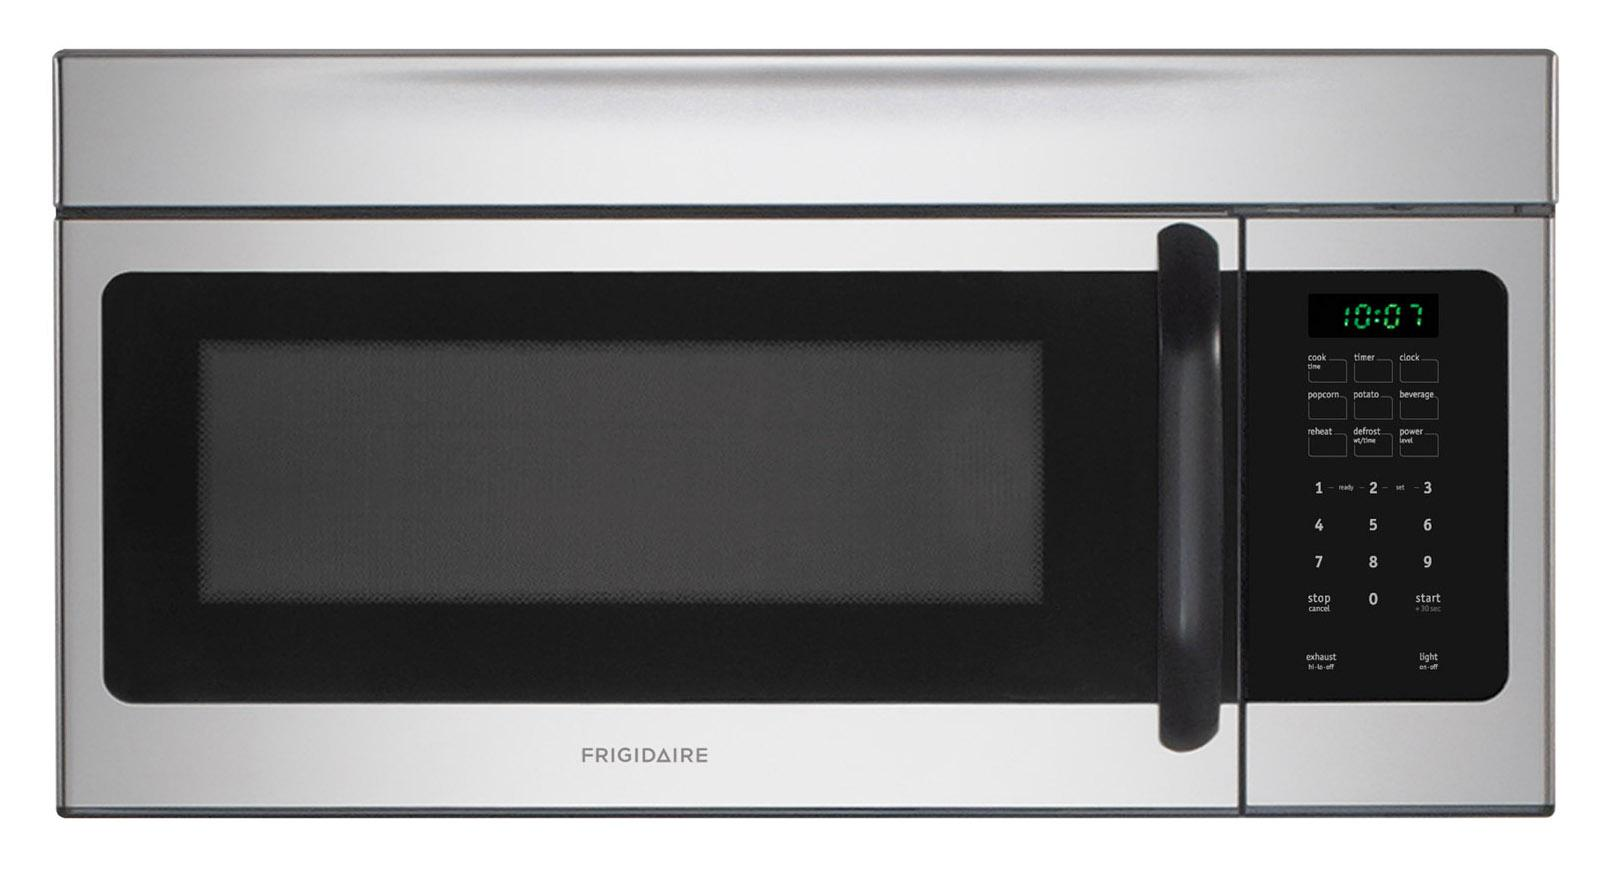 Frigidaire Microwaves 1.6 Cu. Ft. Over-The-Range Microwave - Item Number: FFMV162LS